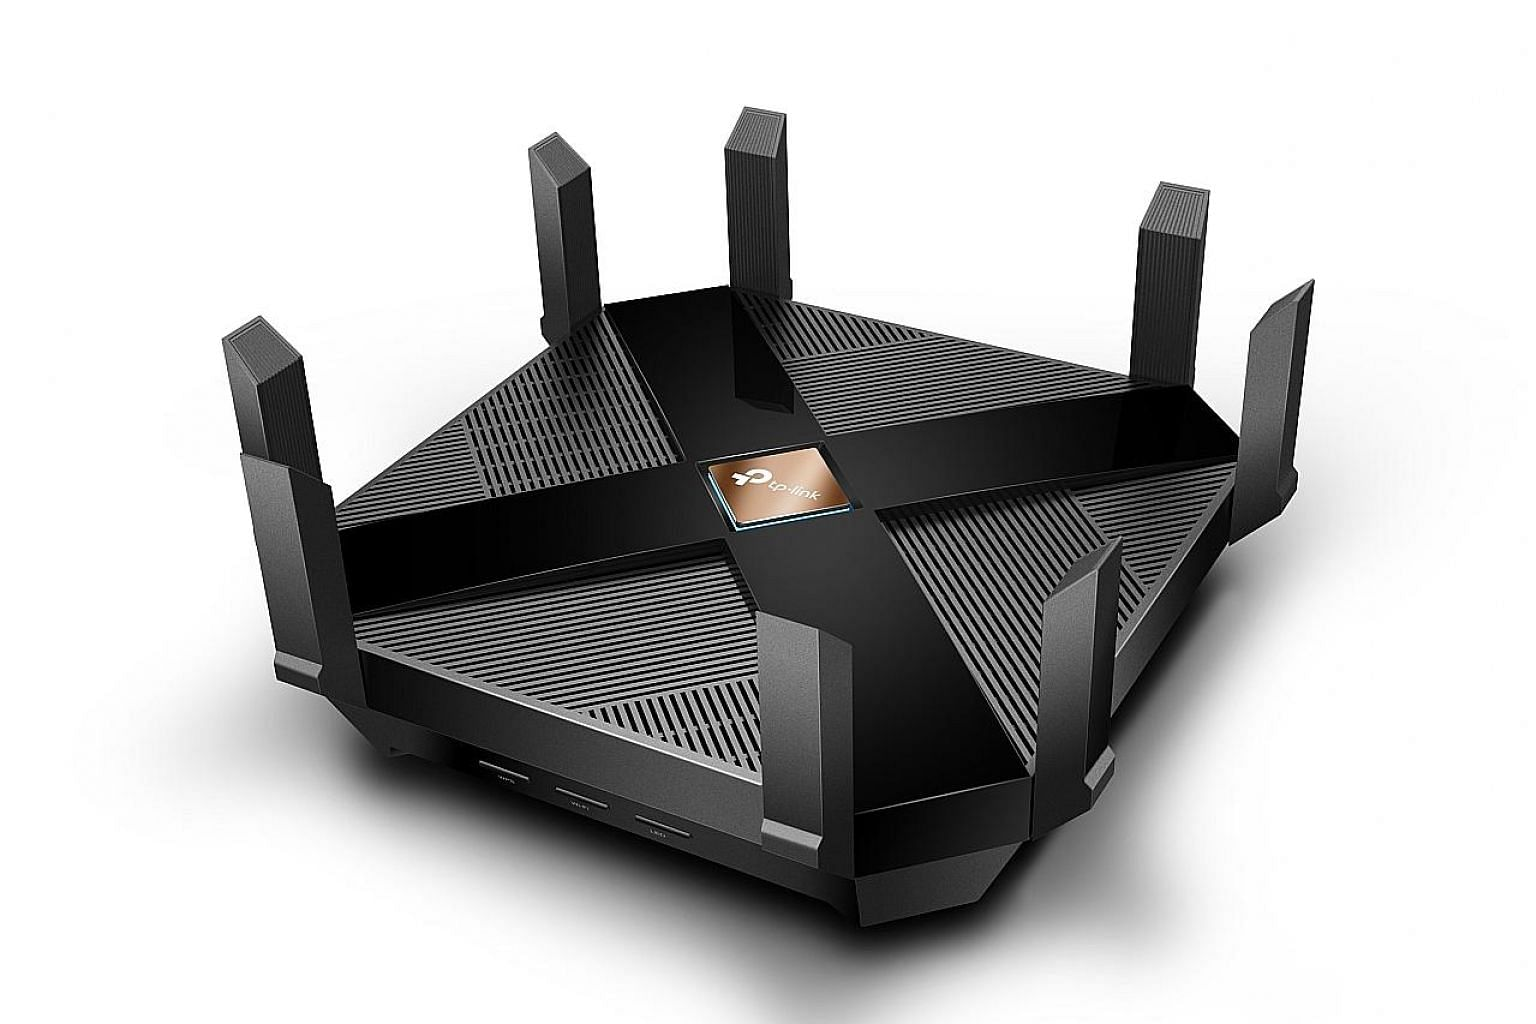 The TP-Link Archer AX6000 is priced to compete and is no slouch in terms of features.